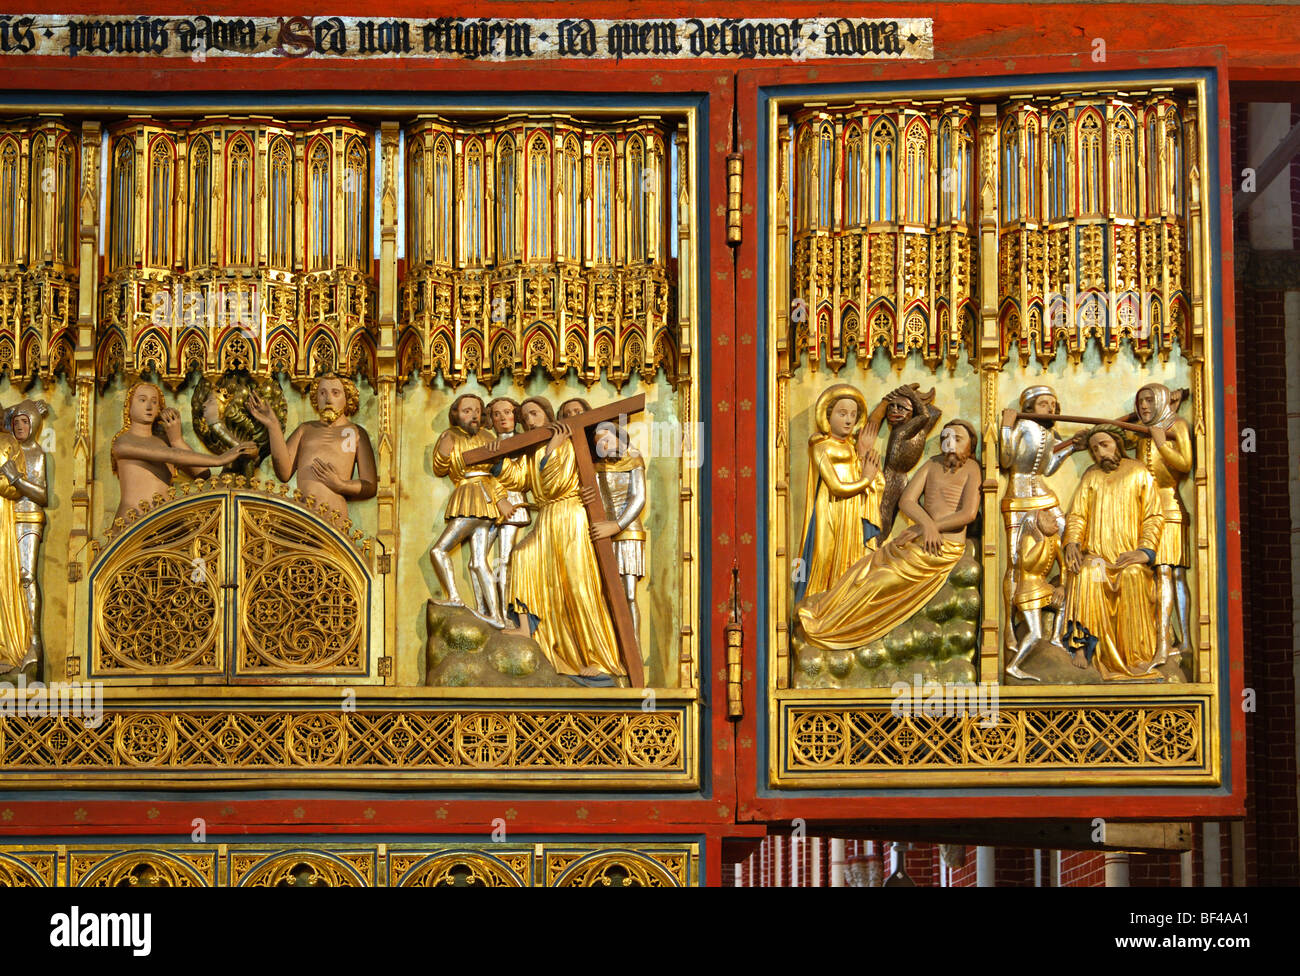 Biblical depictions on the Christ side of the double-sided altar, Doberaner Muenster cathedral of Bad Doberan, Mecklenburg - Stock Image